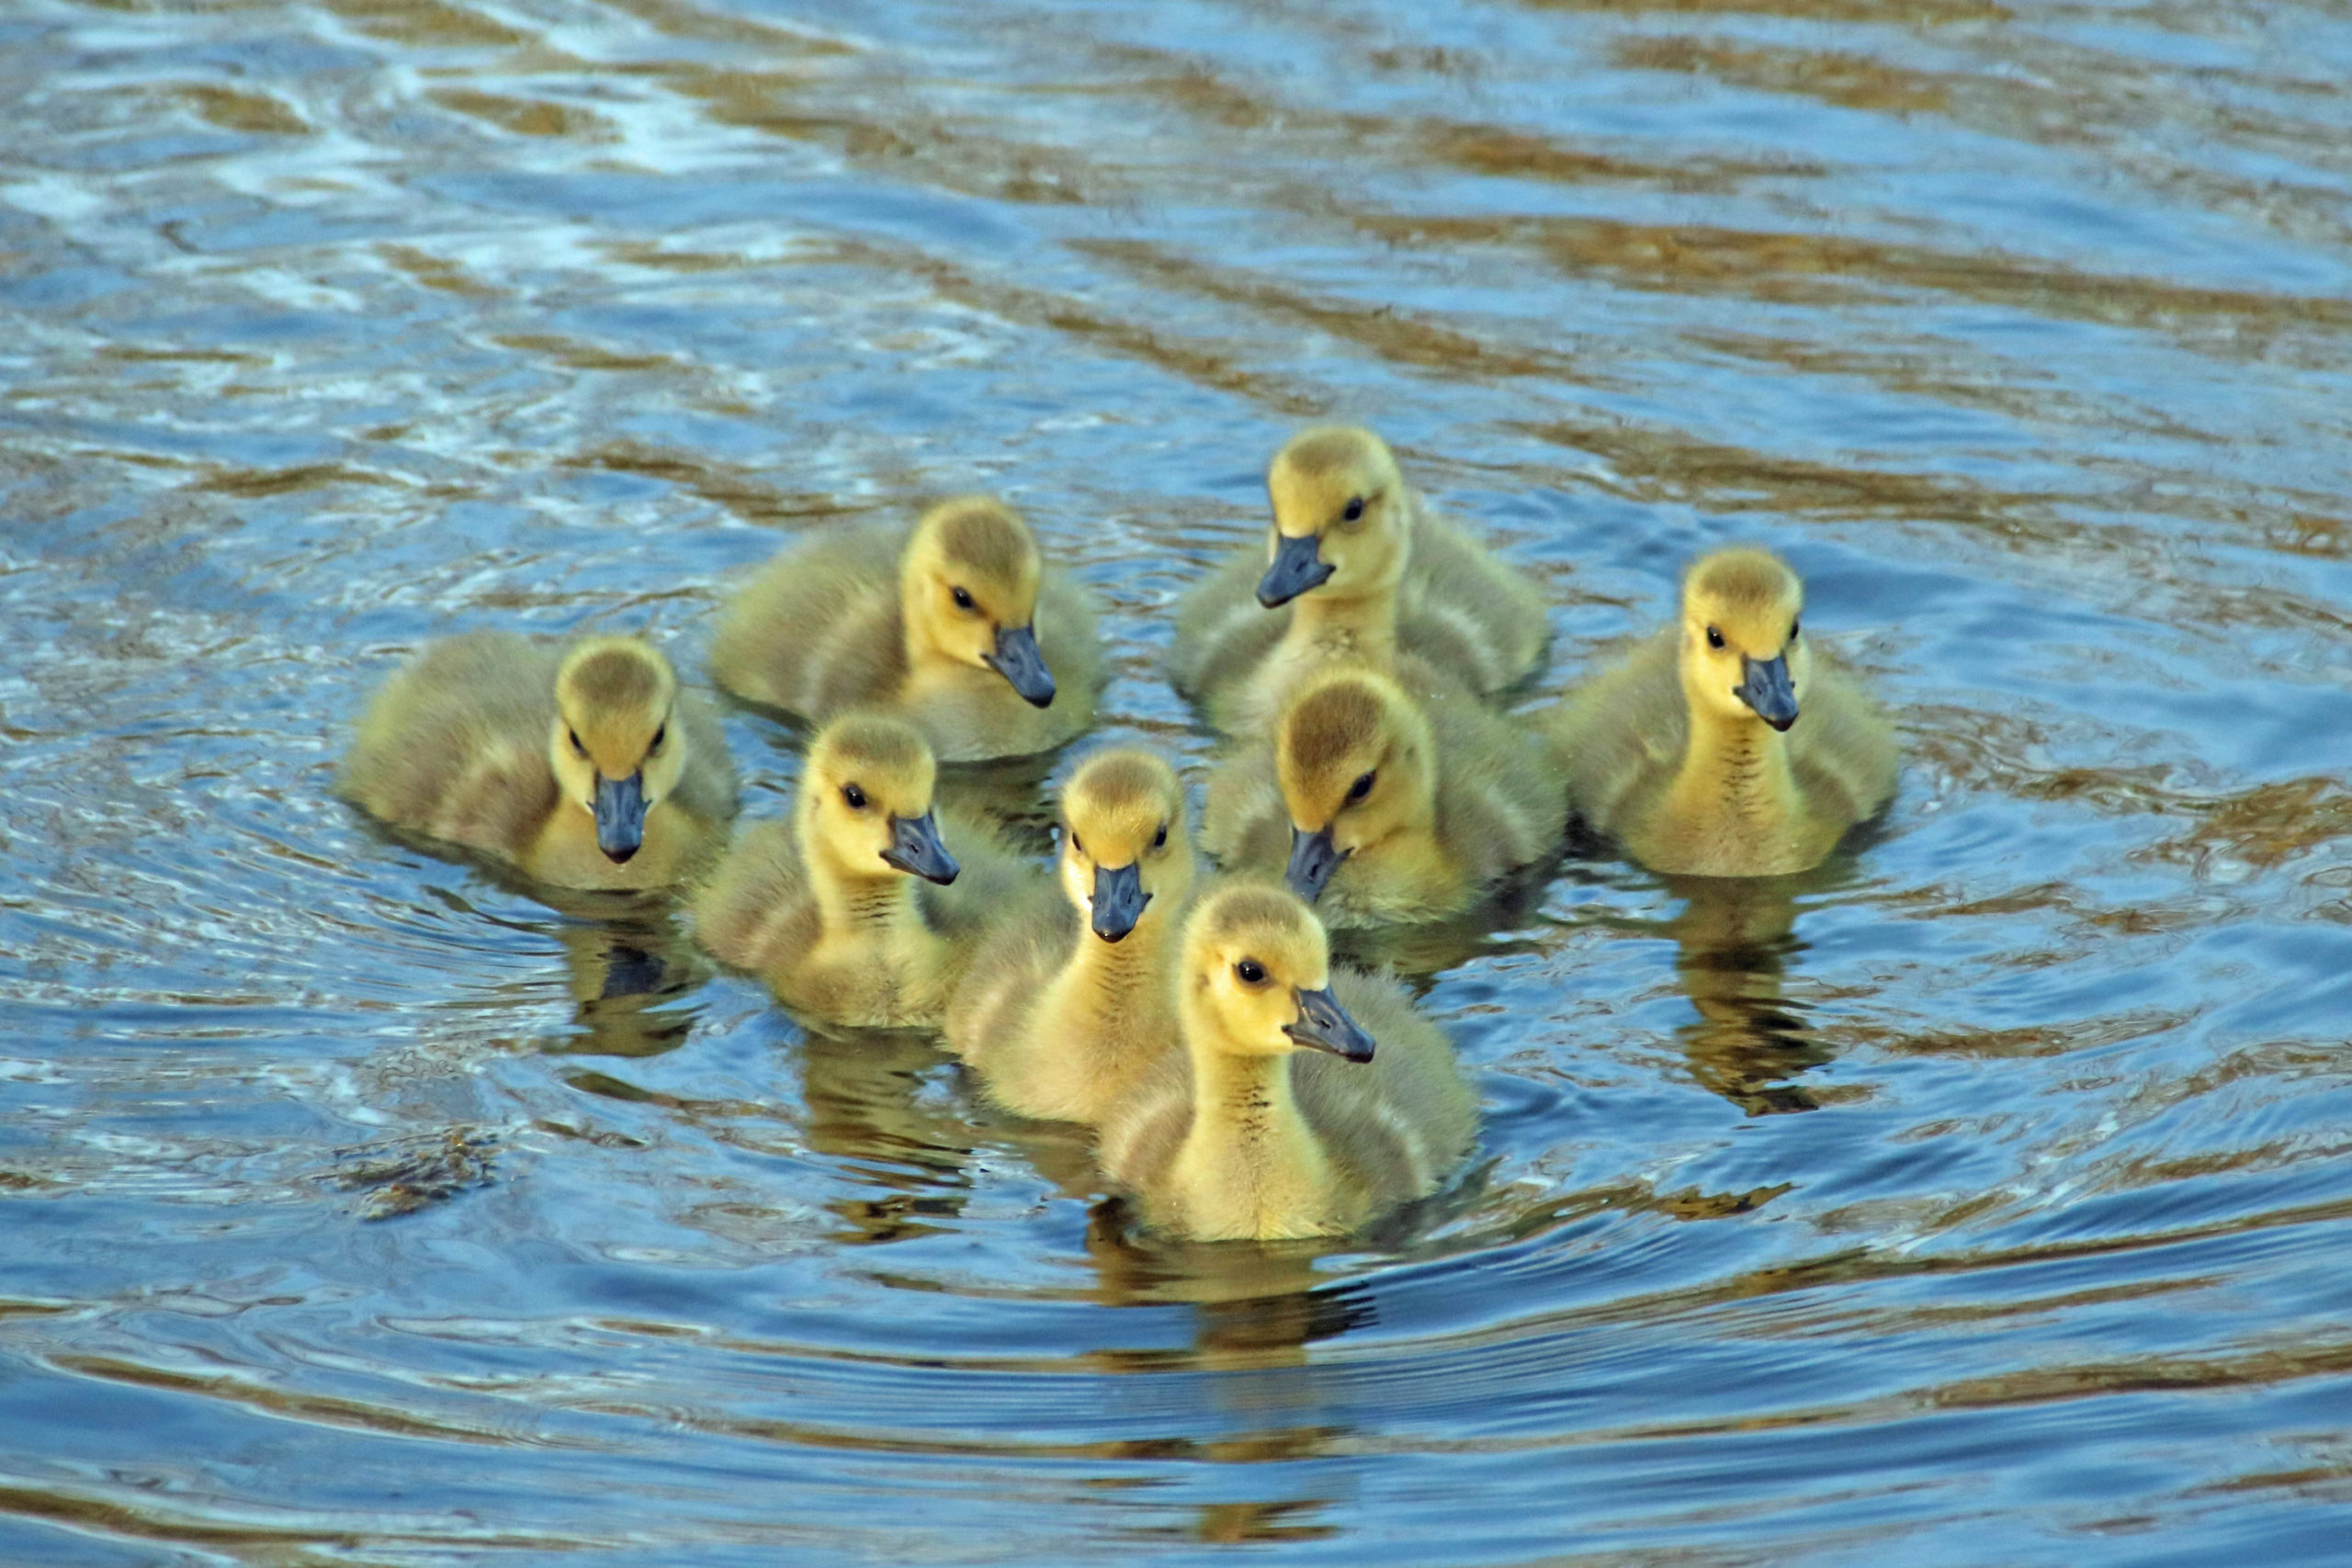 Gosslings swimming